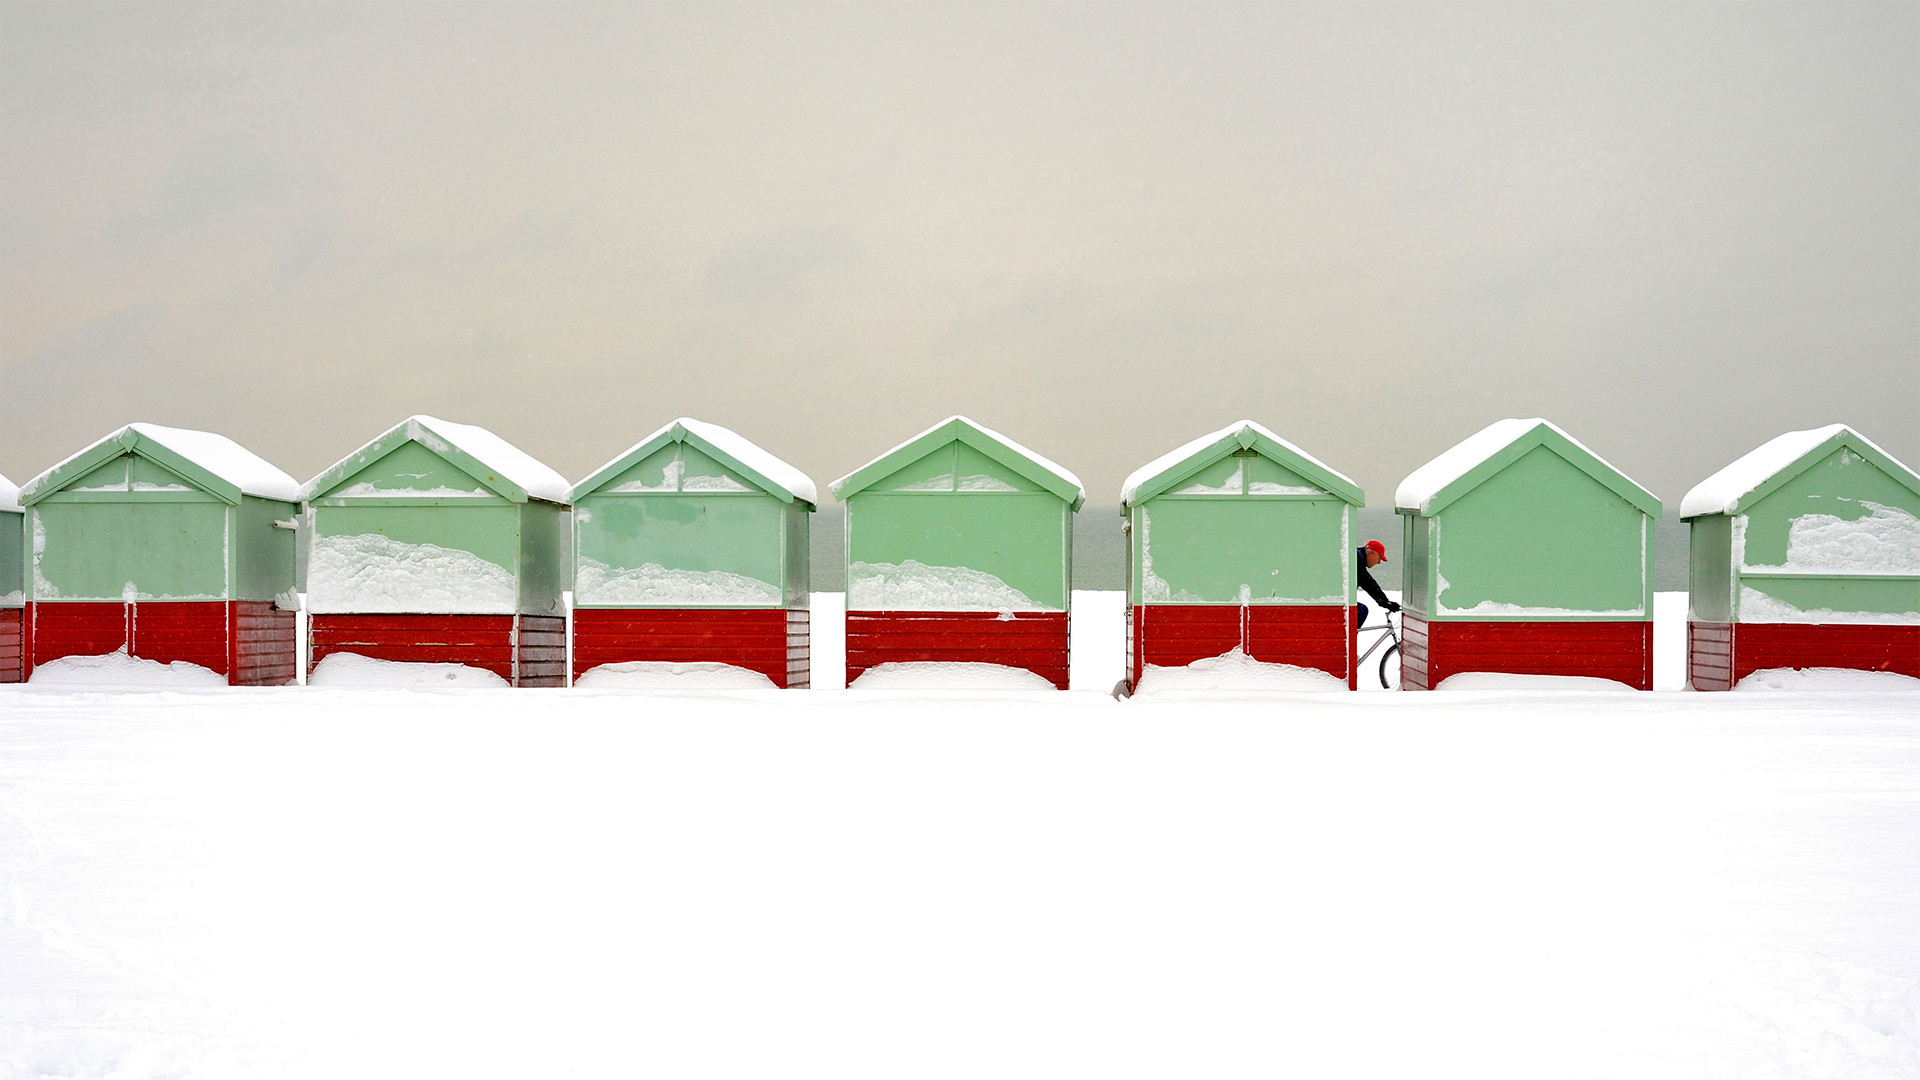 Beach huts covered in snow in Brighton and Hove, England (© Tim Jones/Alamy)(Bing United States)